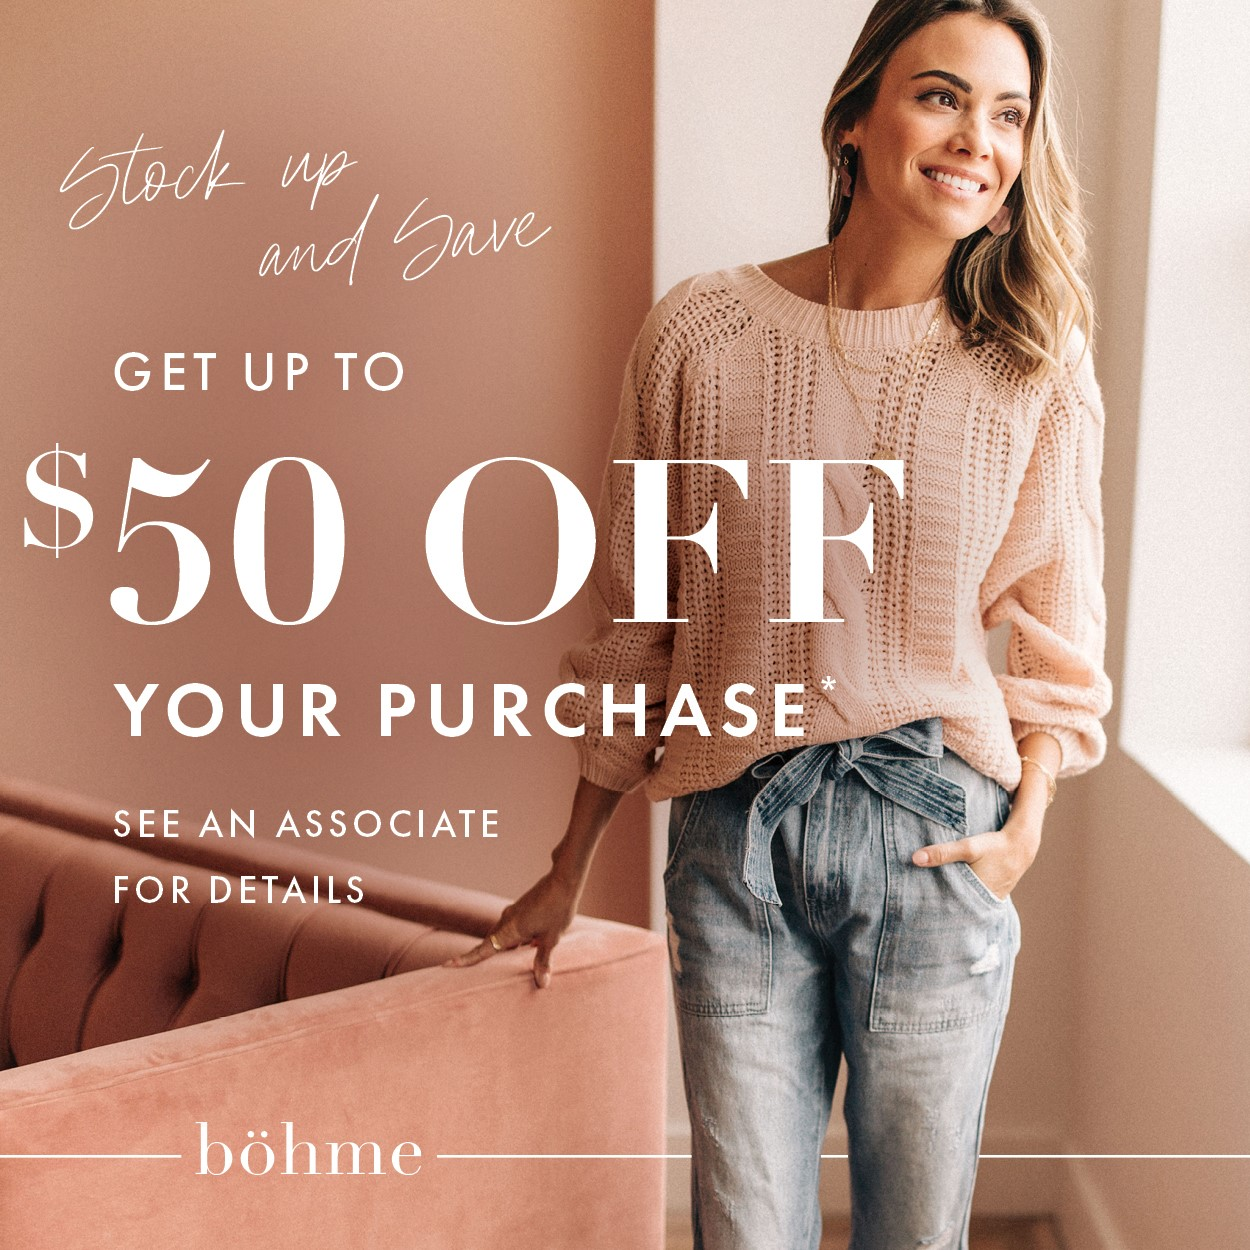 Stock up and Save at Bohme!